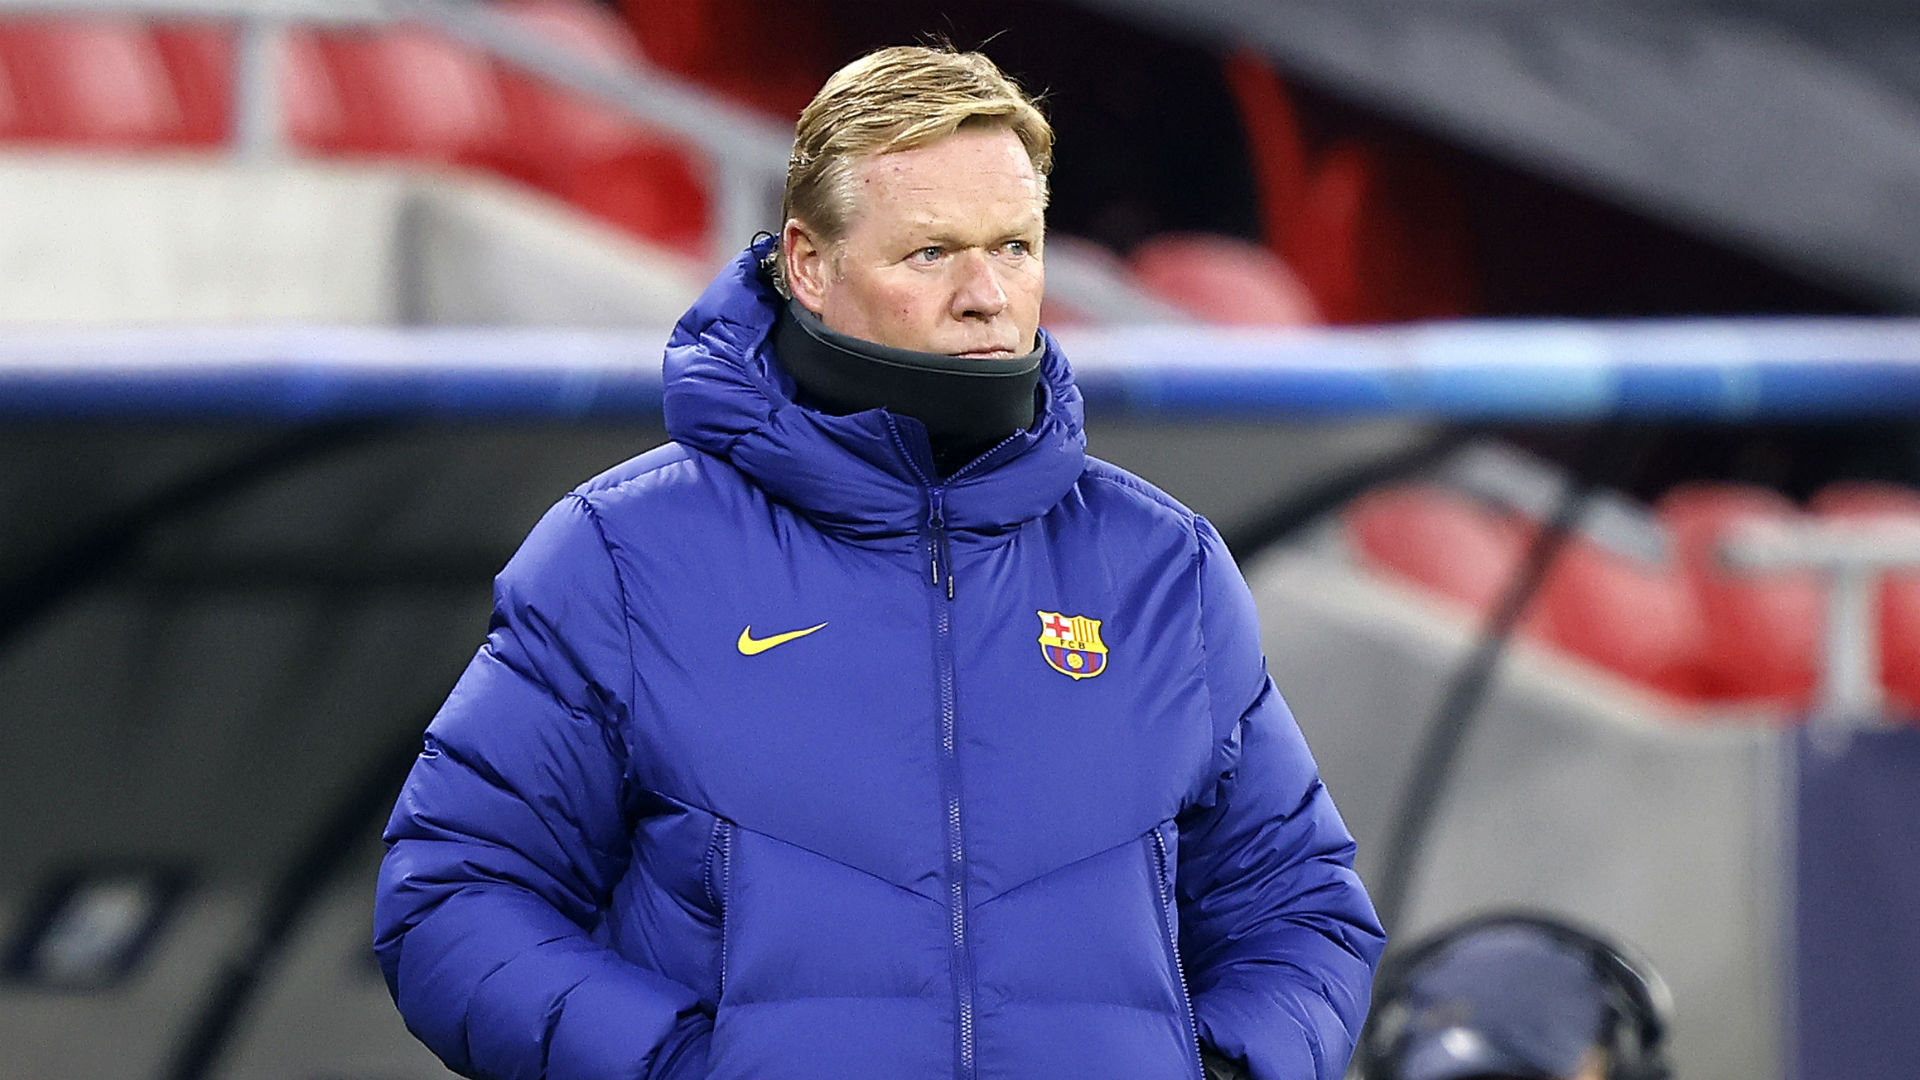 Koeman has seen a 'big change' in Barcelona